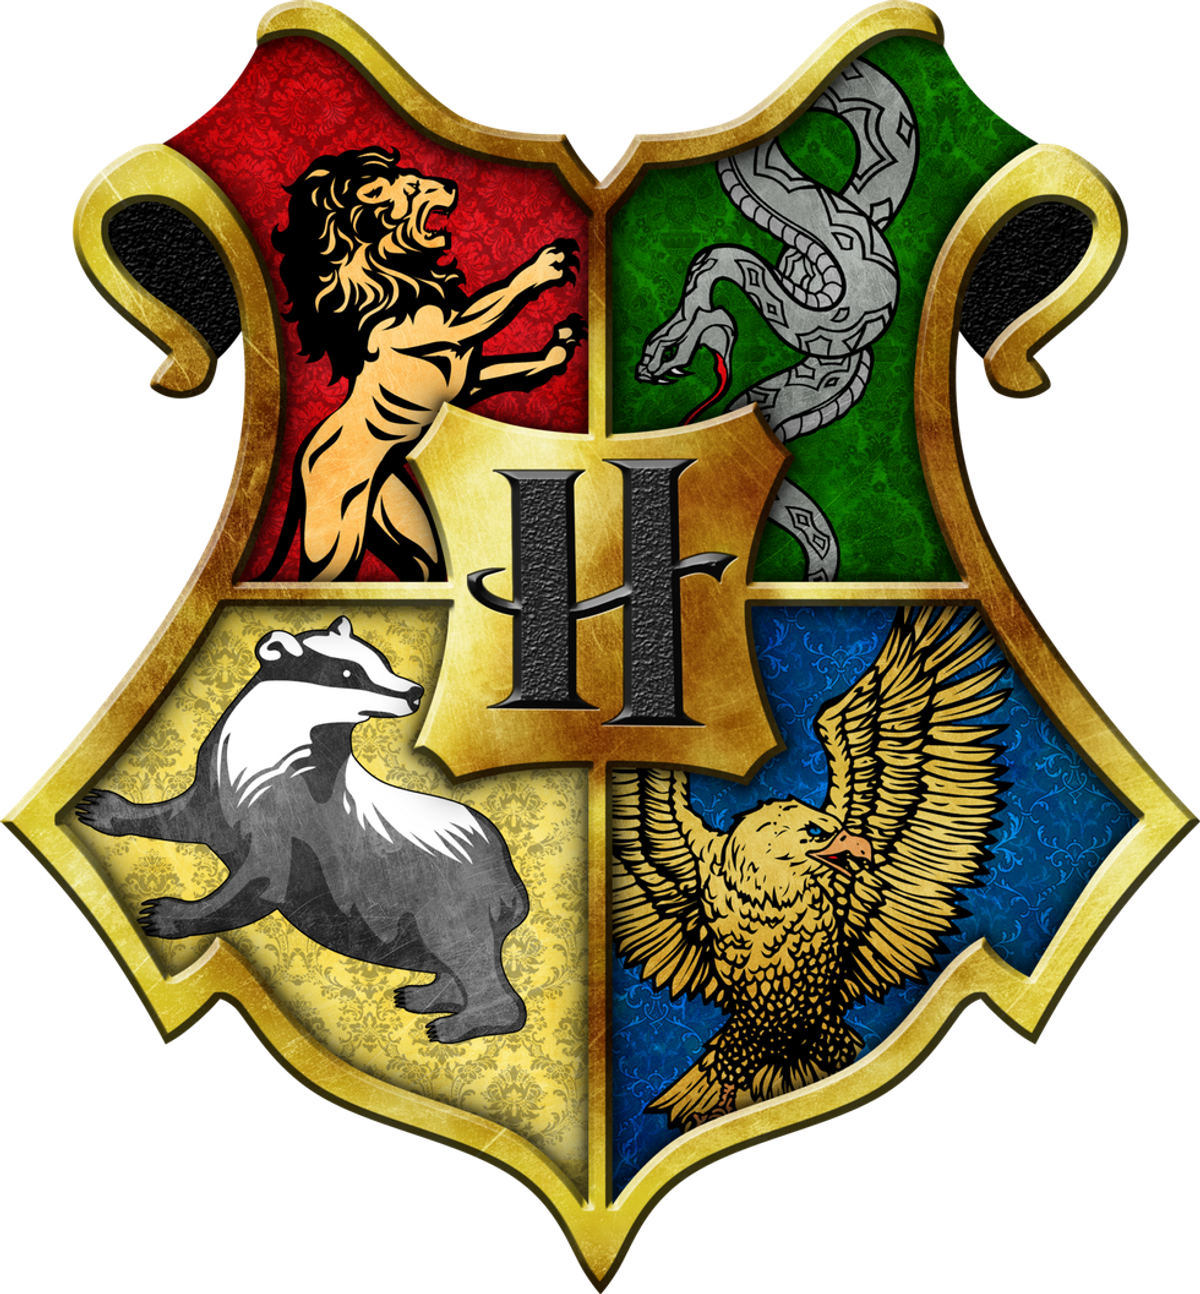 The Enneagram Goes To Hogwarts